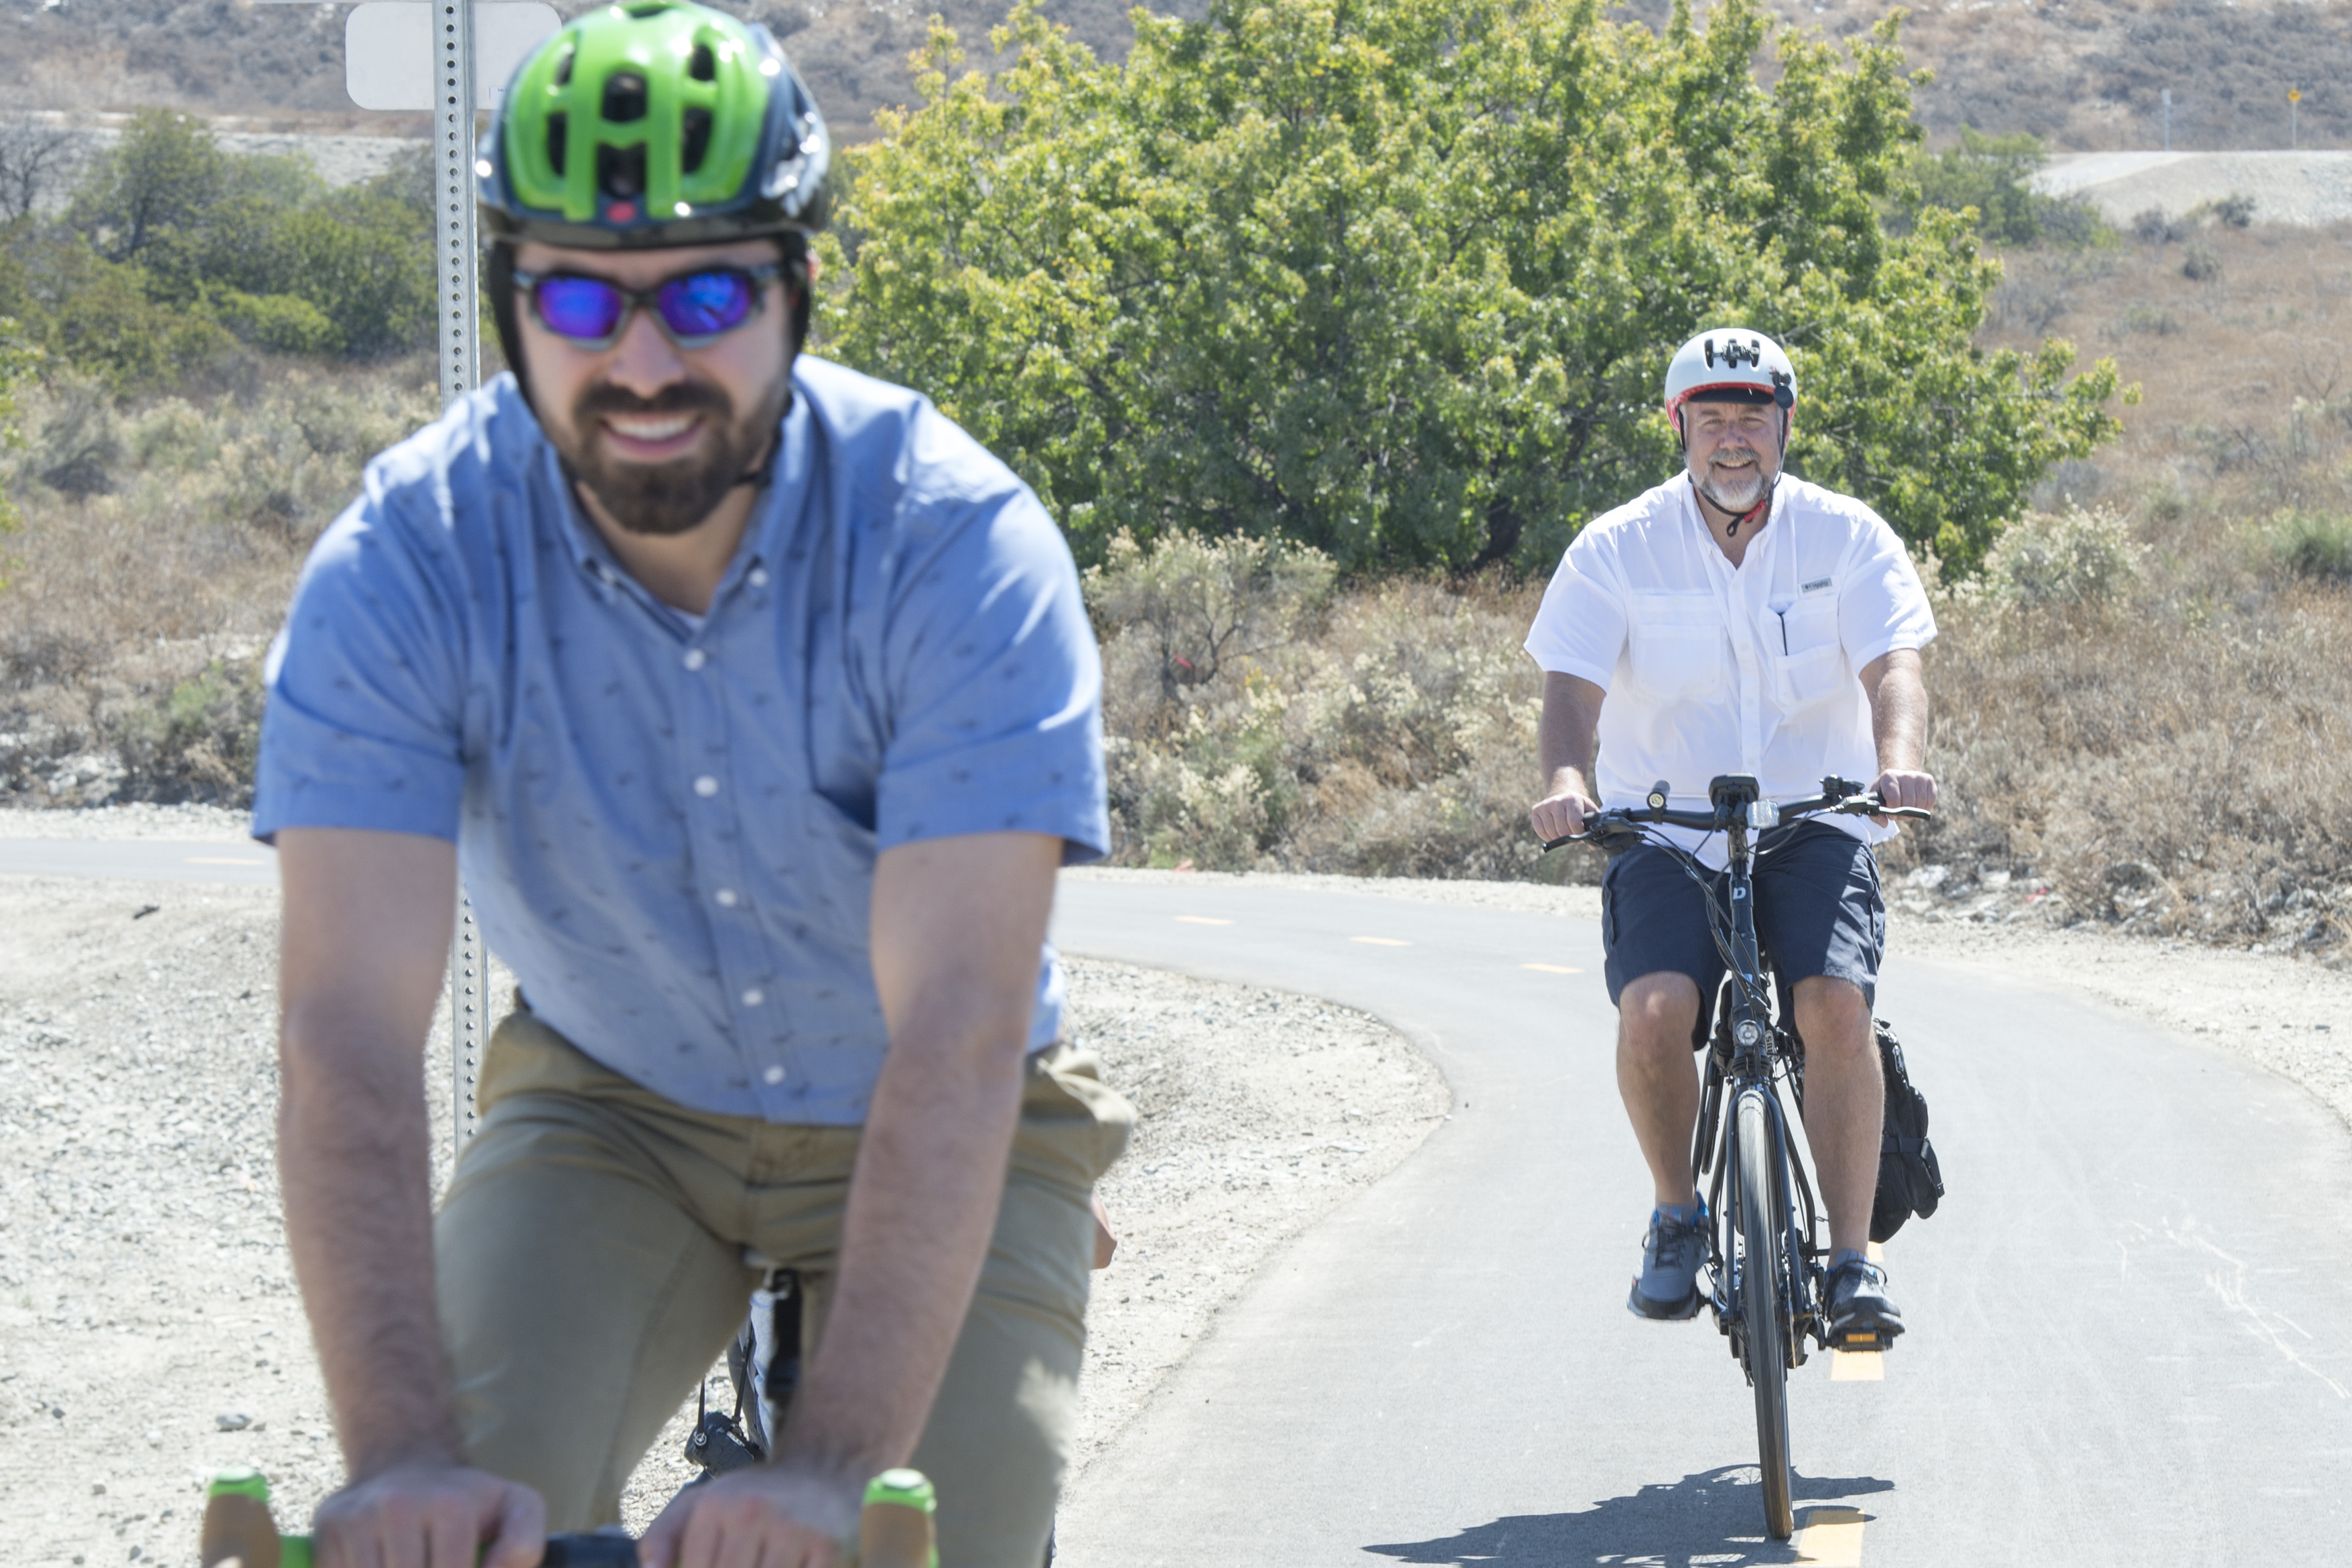 Board of Supervisors Approves Grant to Develop Active Transportation Plan in the East San Gabriel Valley